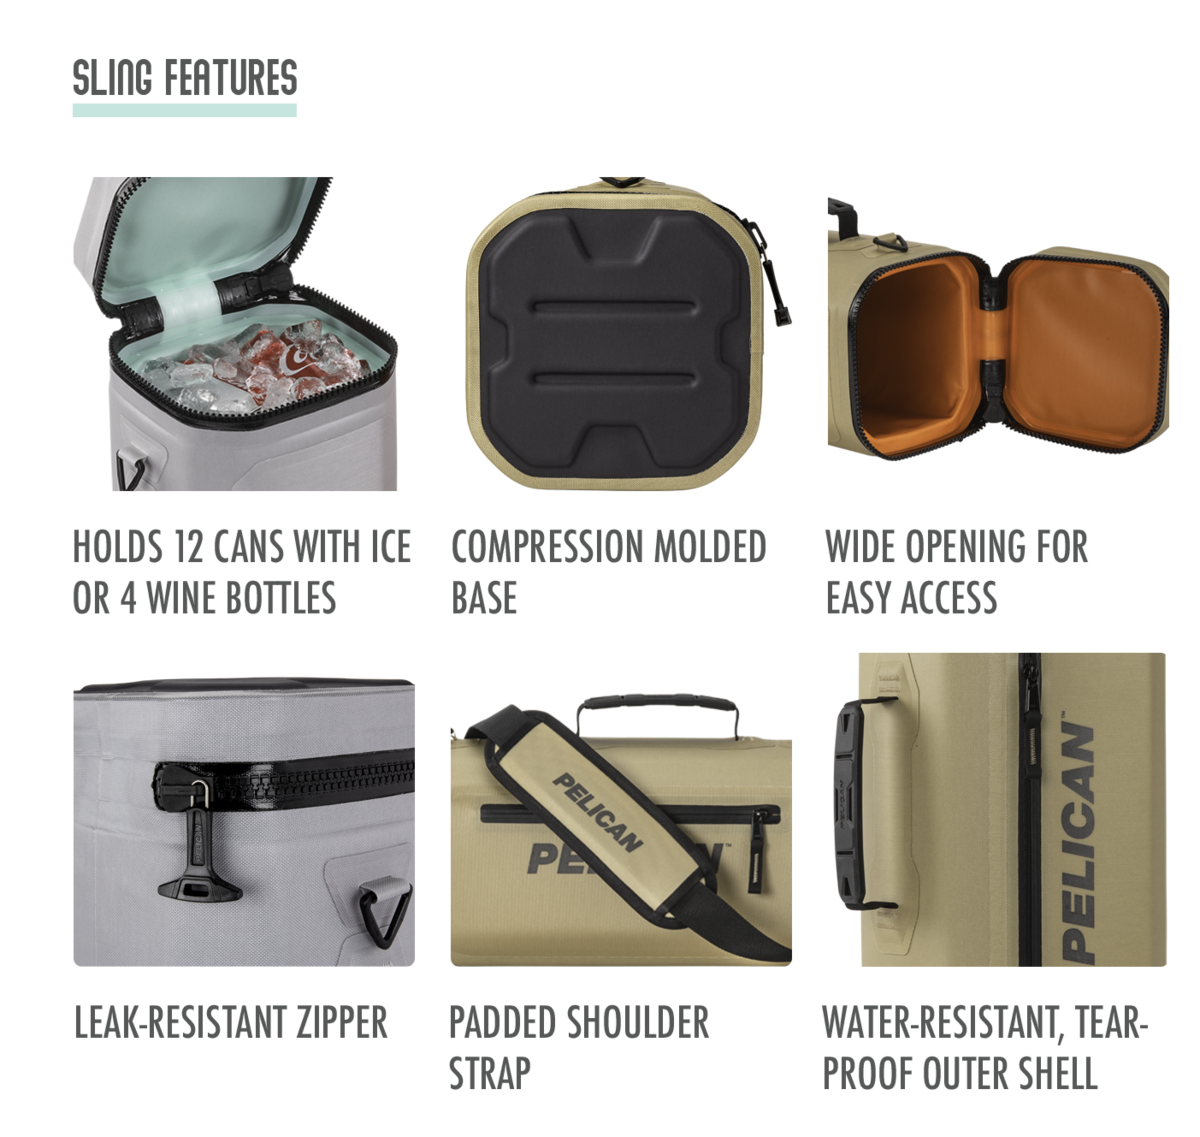 The Pelican Dayventure Sling holds 12 cans with ice or 4 bottles of wine. The bottom is made with a compression molded base. Sling Cooler has a wide opening for easy access. The zipper is leak-resistant. The shoulder strap is padded. The outer shell is water-resistant, tear-proof durable material.